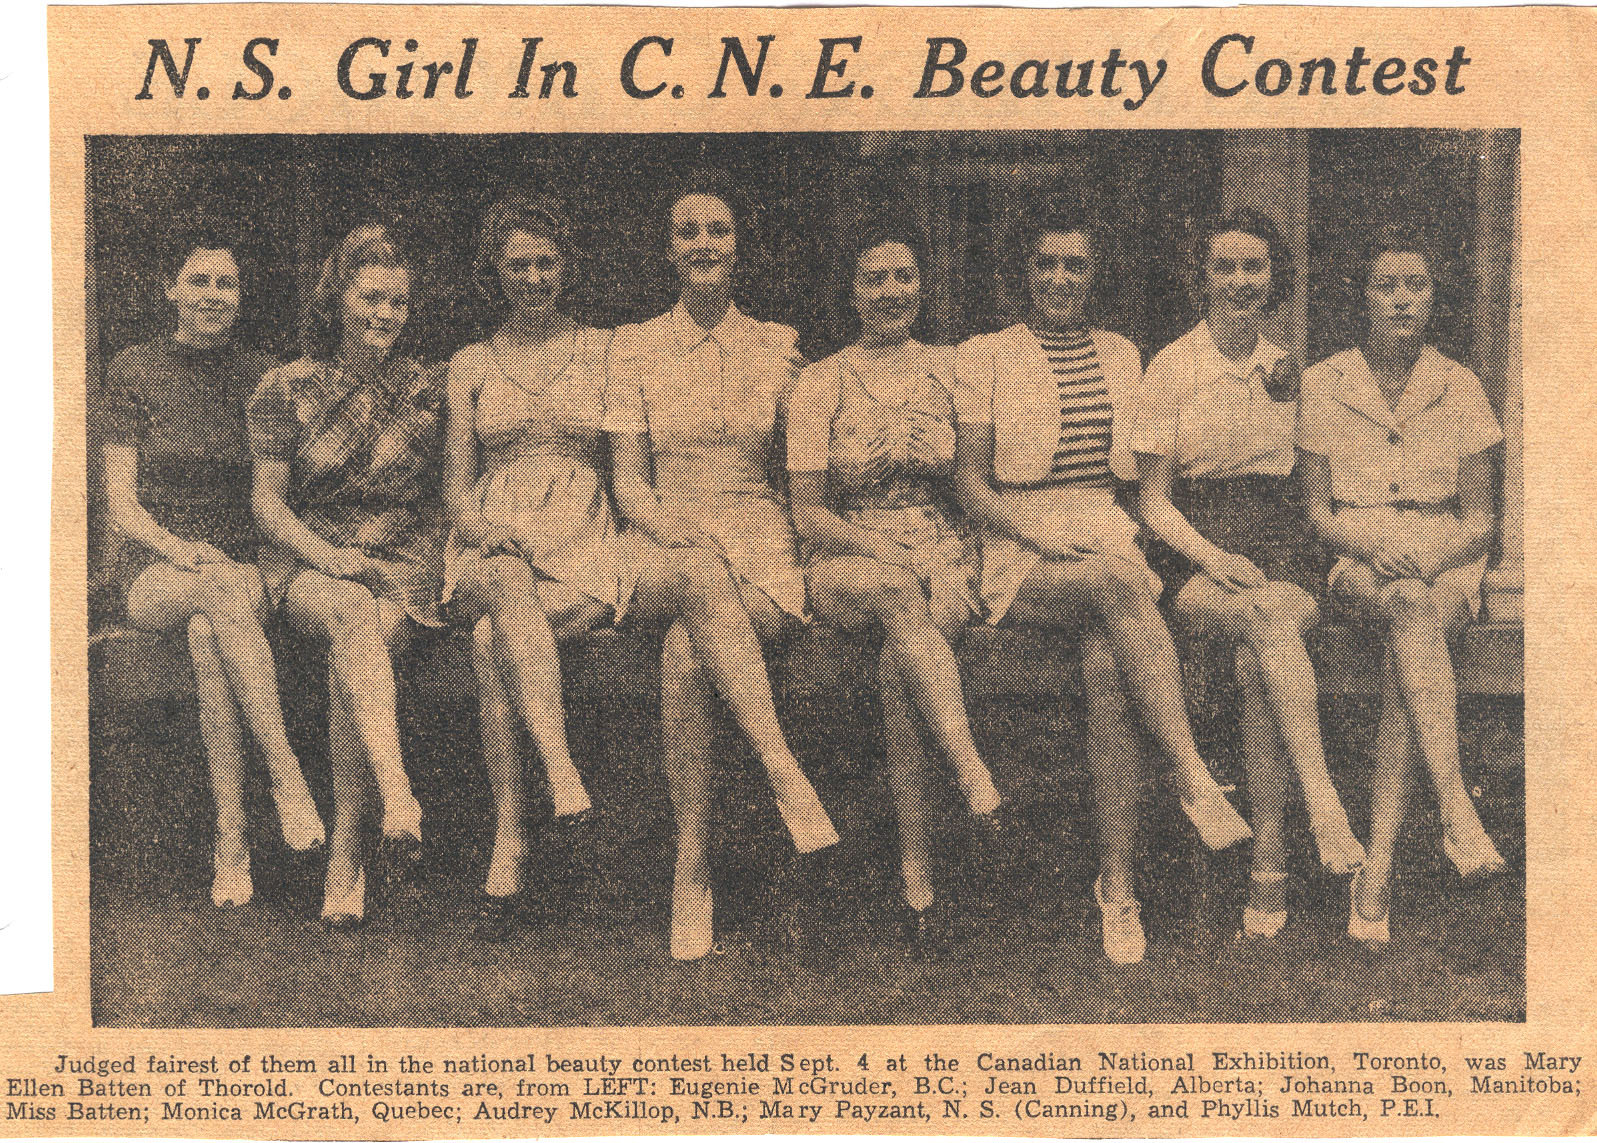 N.S. Girl in C.N.E. Beauty Contest